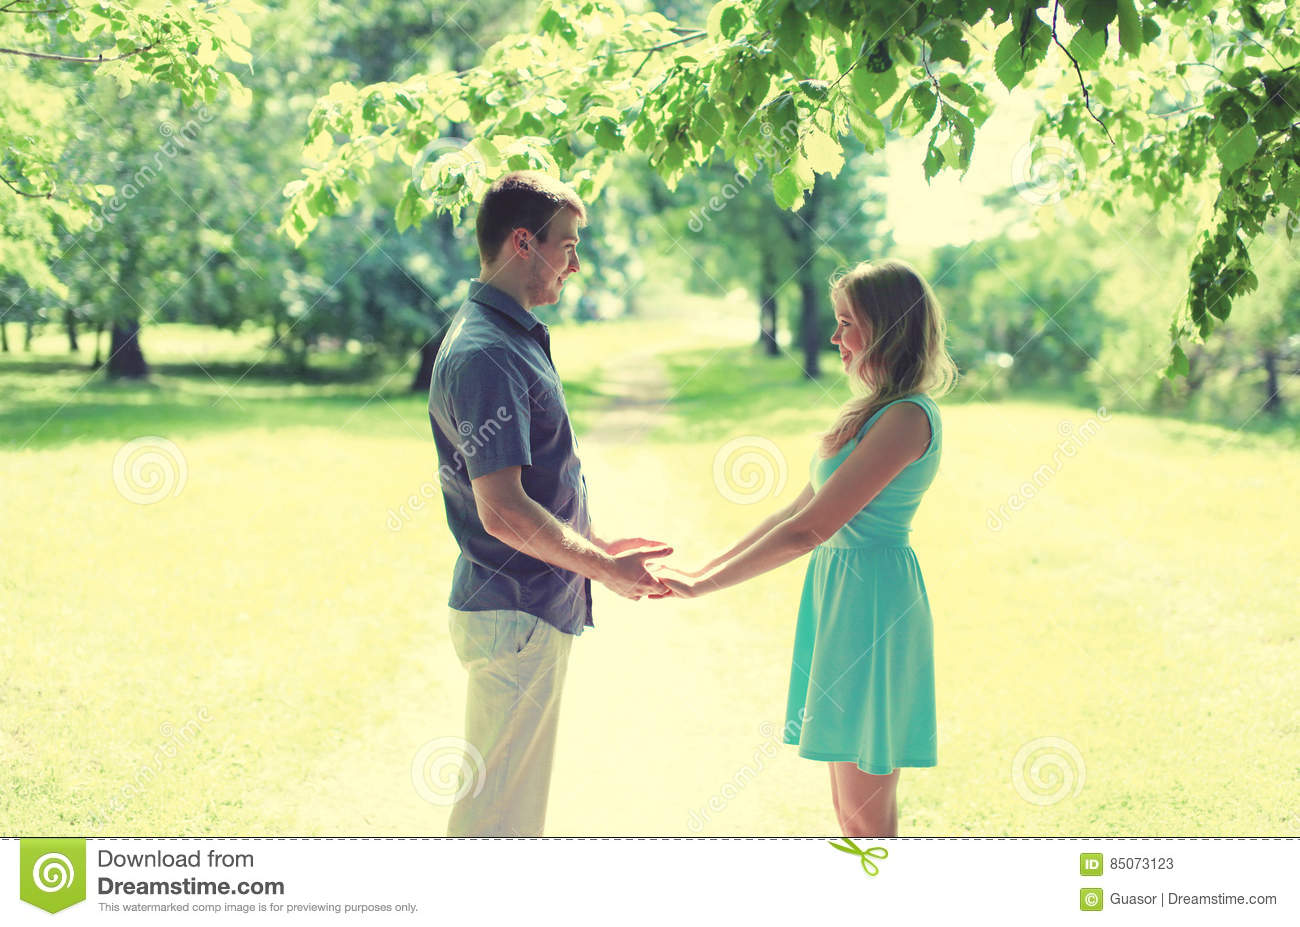 Happy young smiling couple in love, holds hands, relationships, date, wedding - concept, vintage soft colors